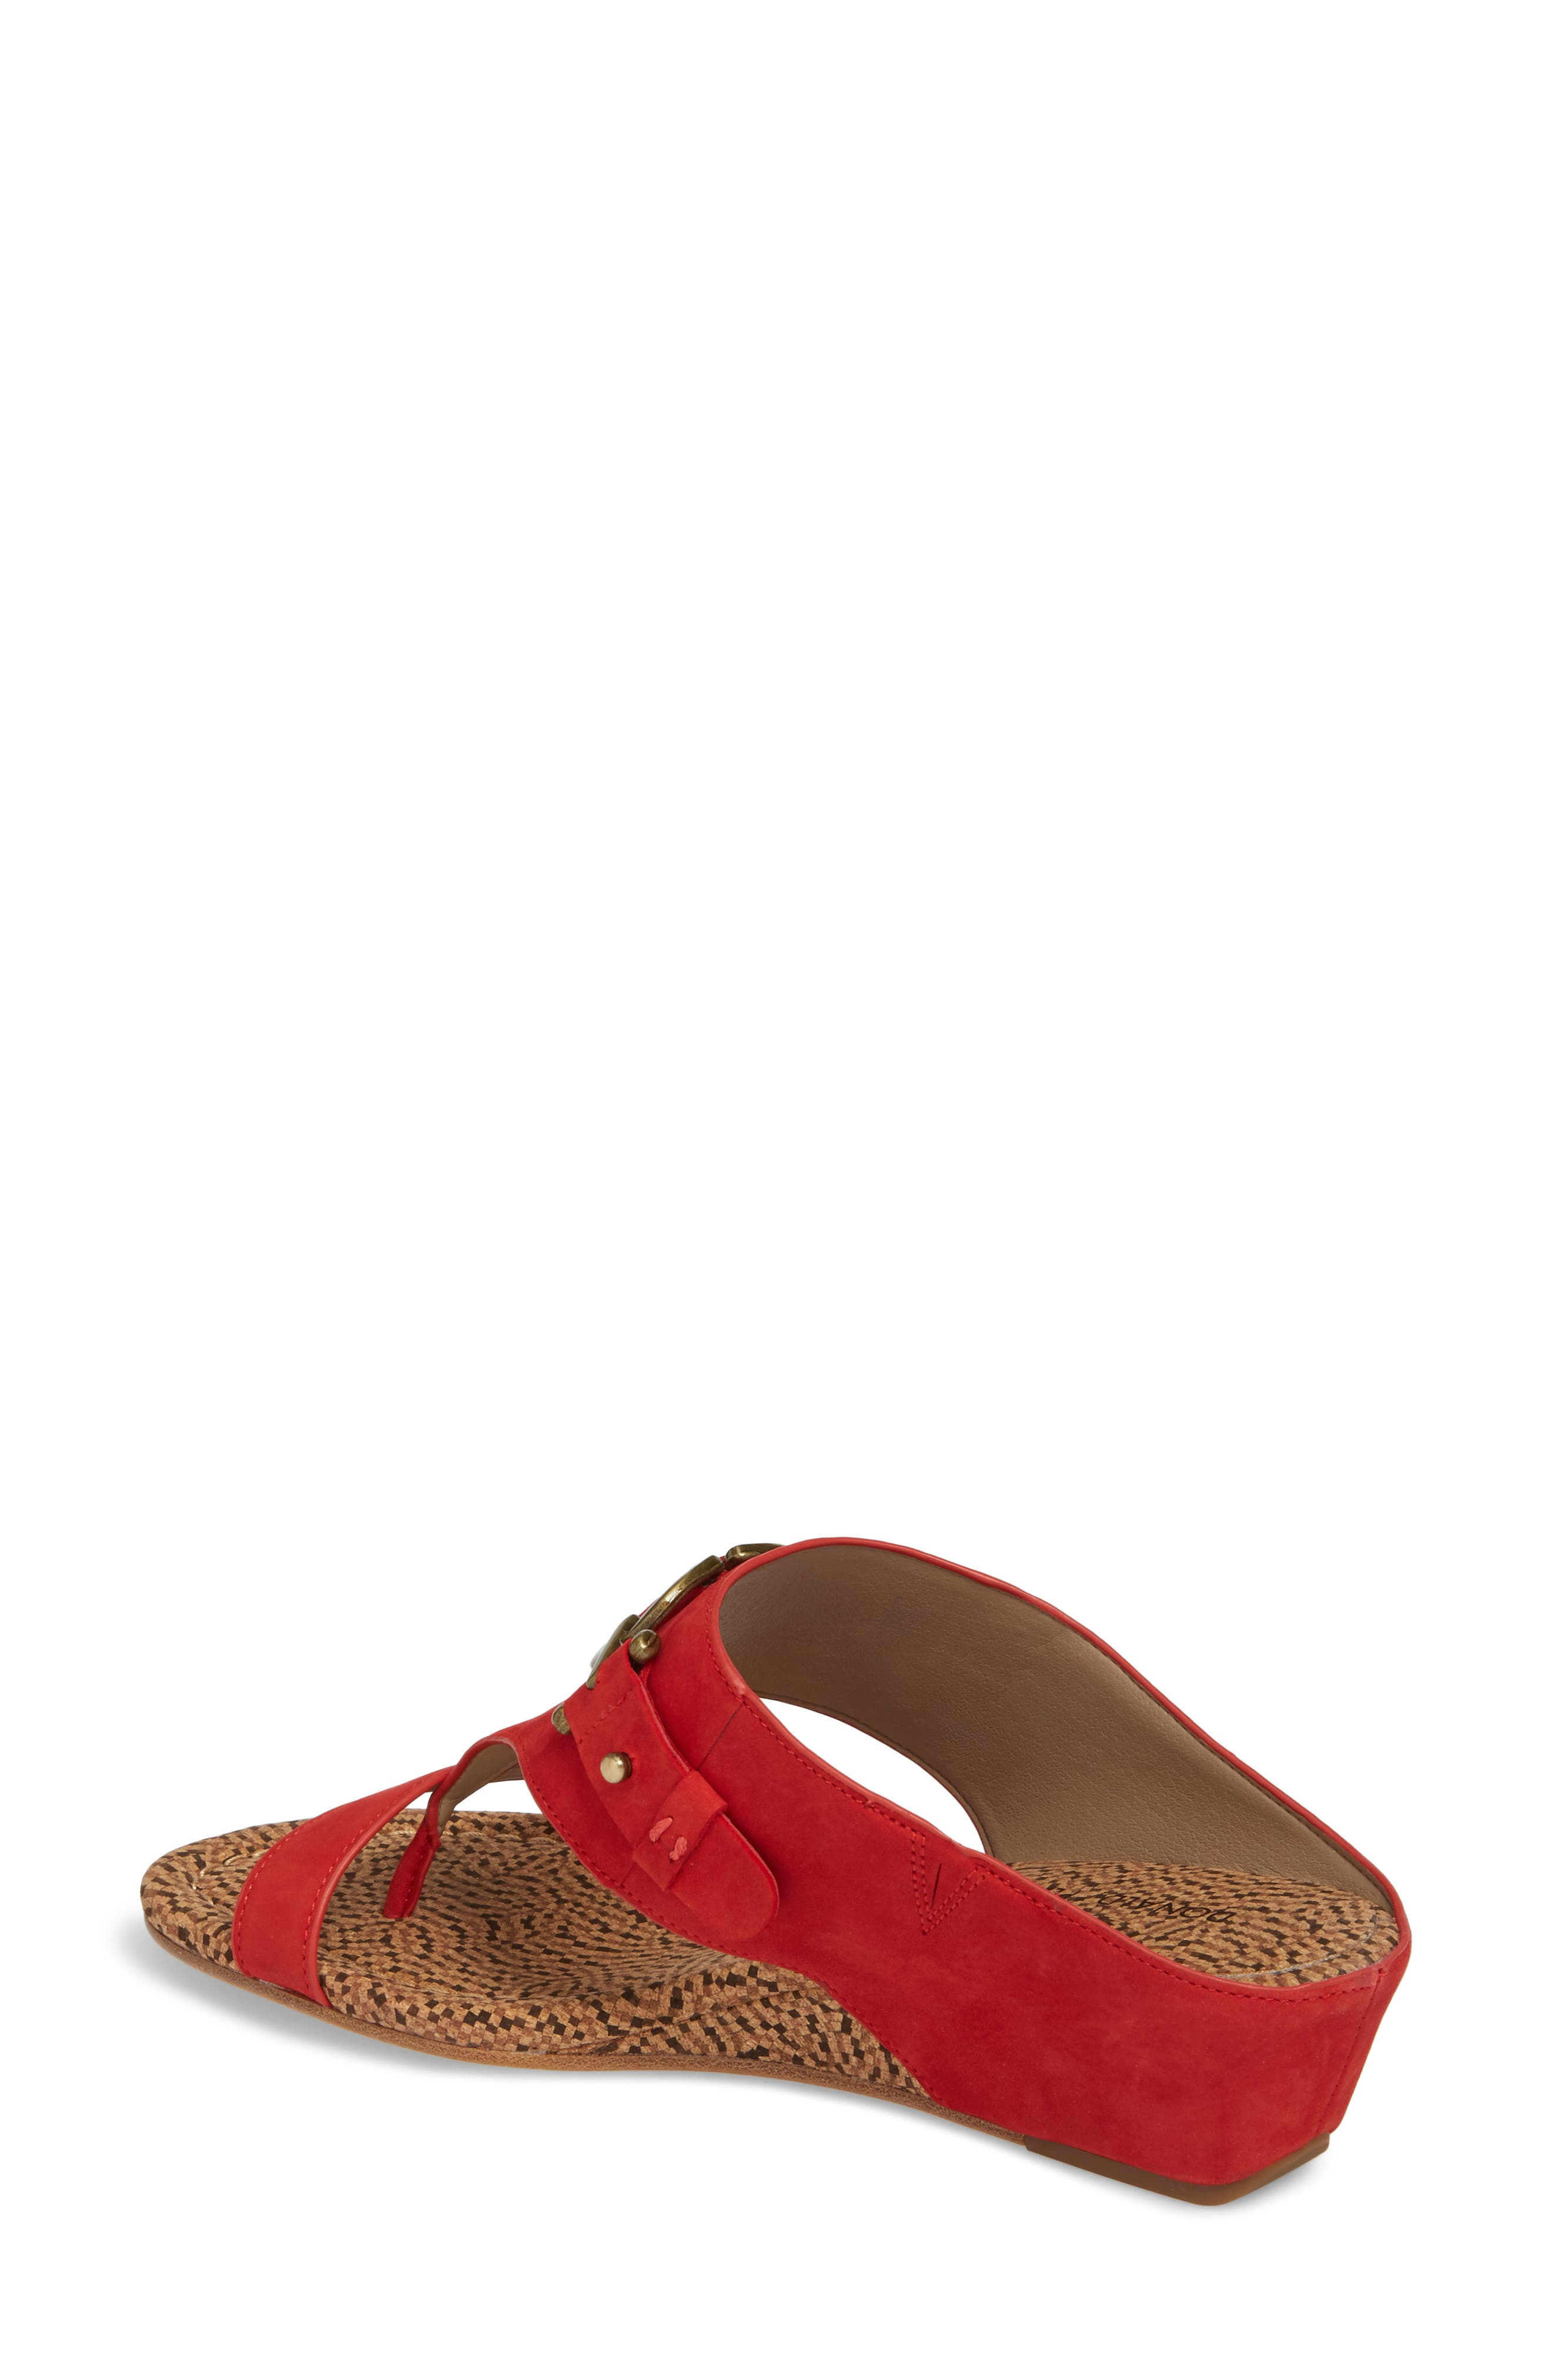 Dayna Wedge Sandal,                             Alternate thumbnail 2, color,                             Poppy Leather